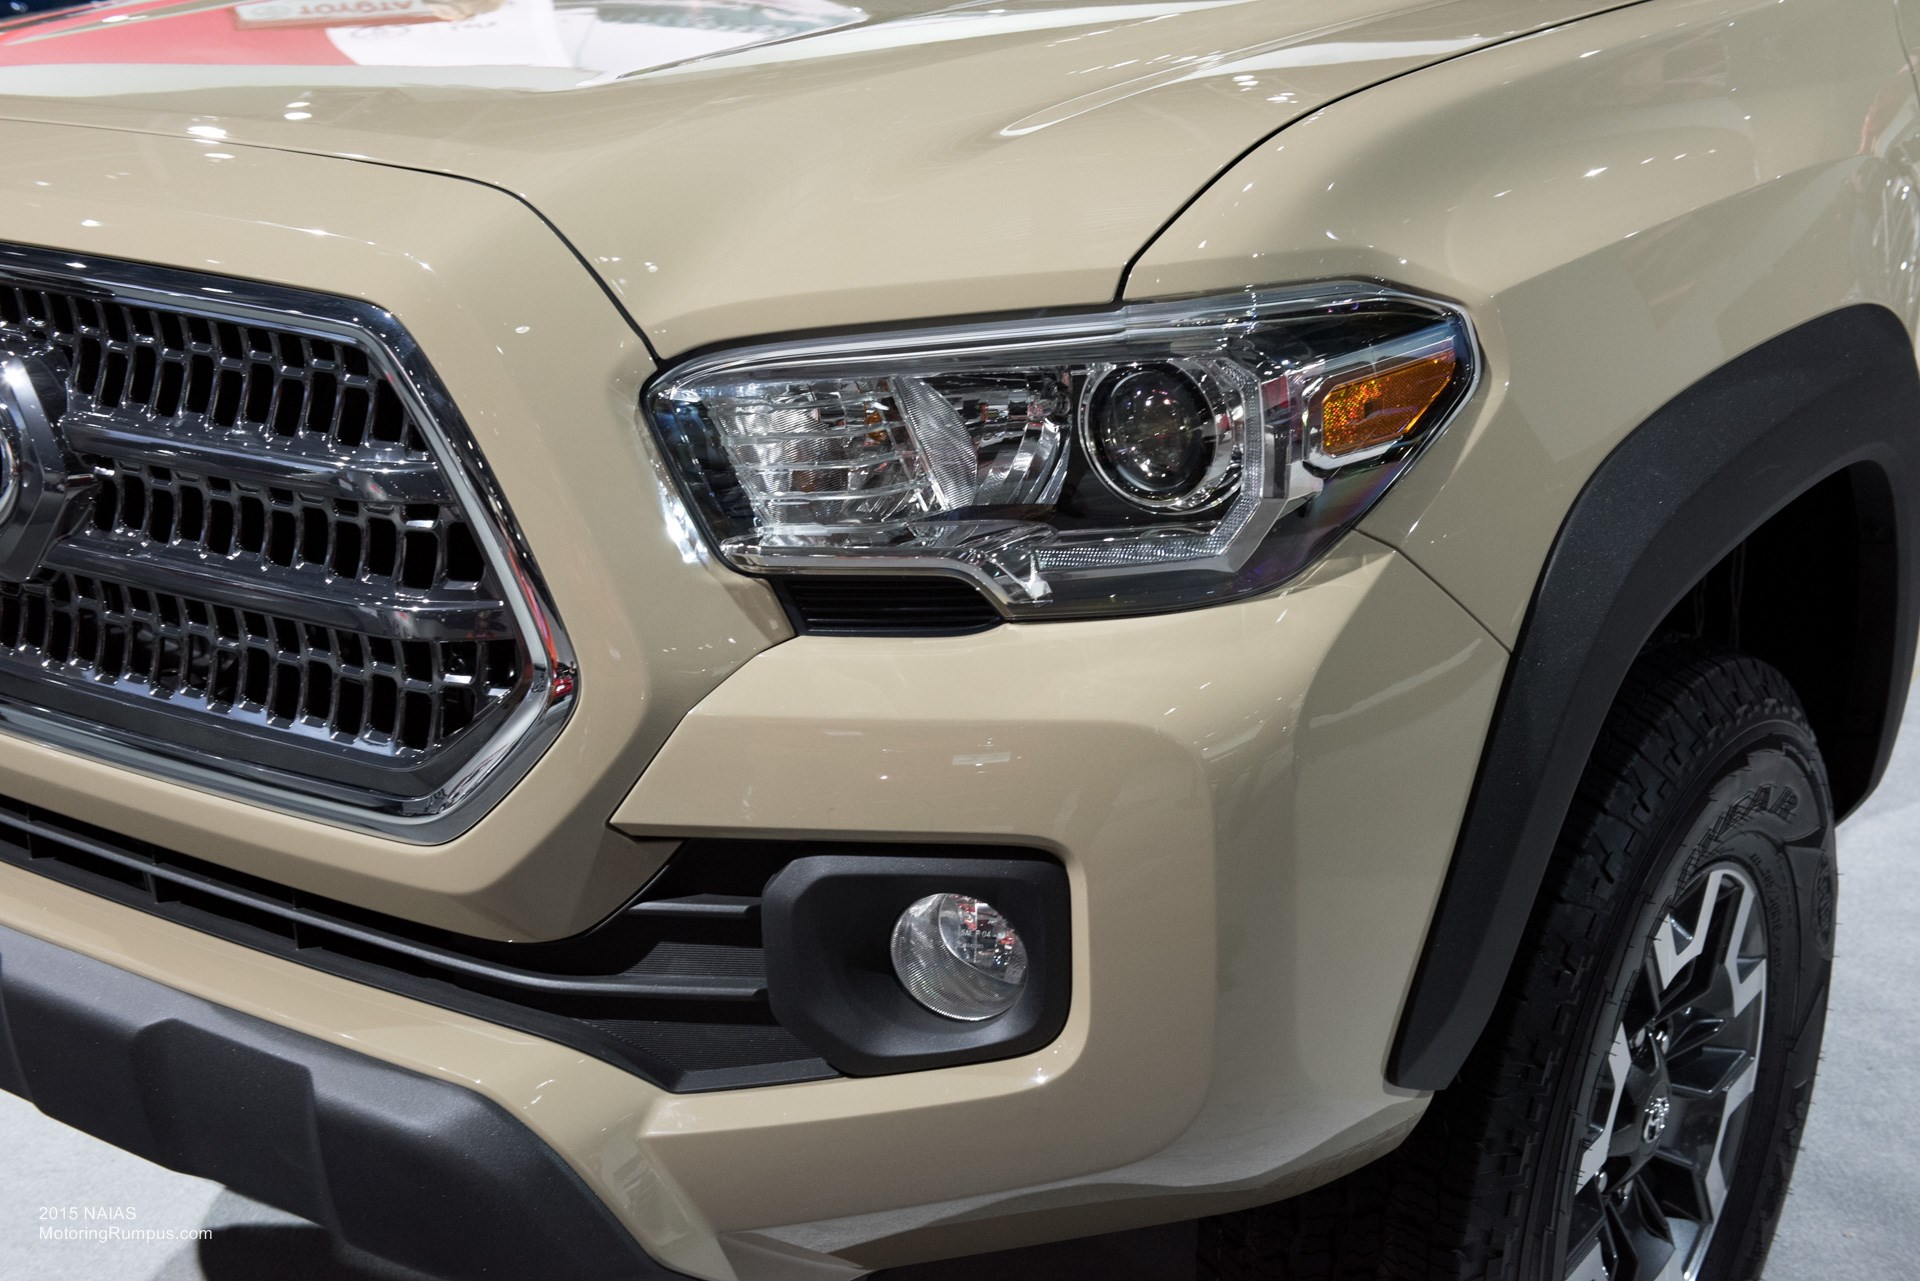 2015 naias 2016 toyota tacoma headlight motoring rumpus. Black Bedroom Furniture Sets. Home Design Ideas